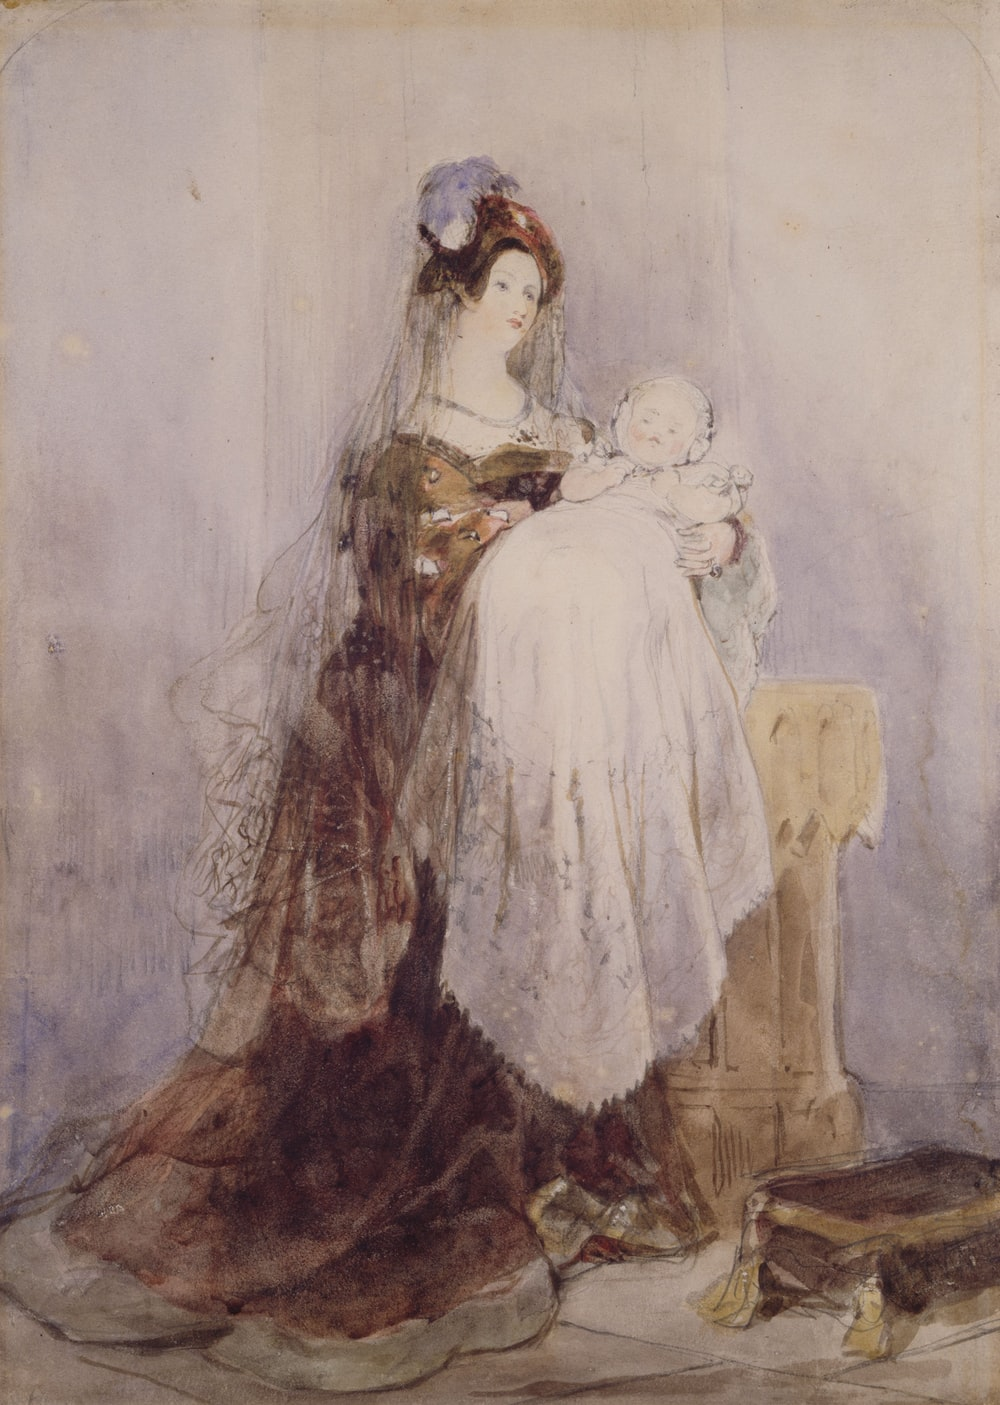 painting of woman carrying baby